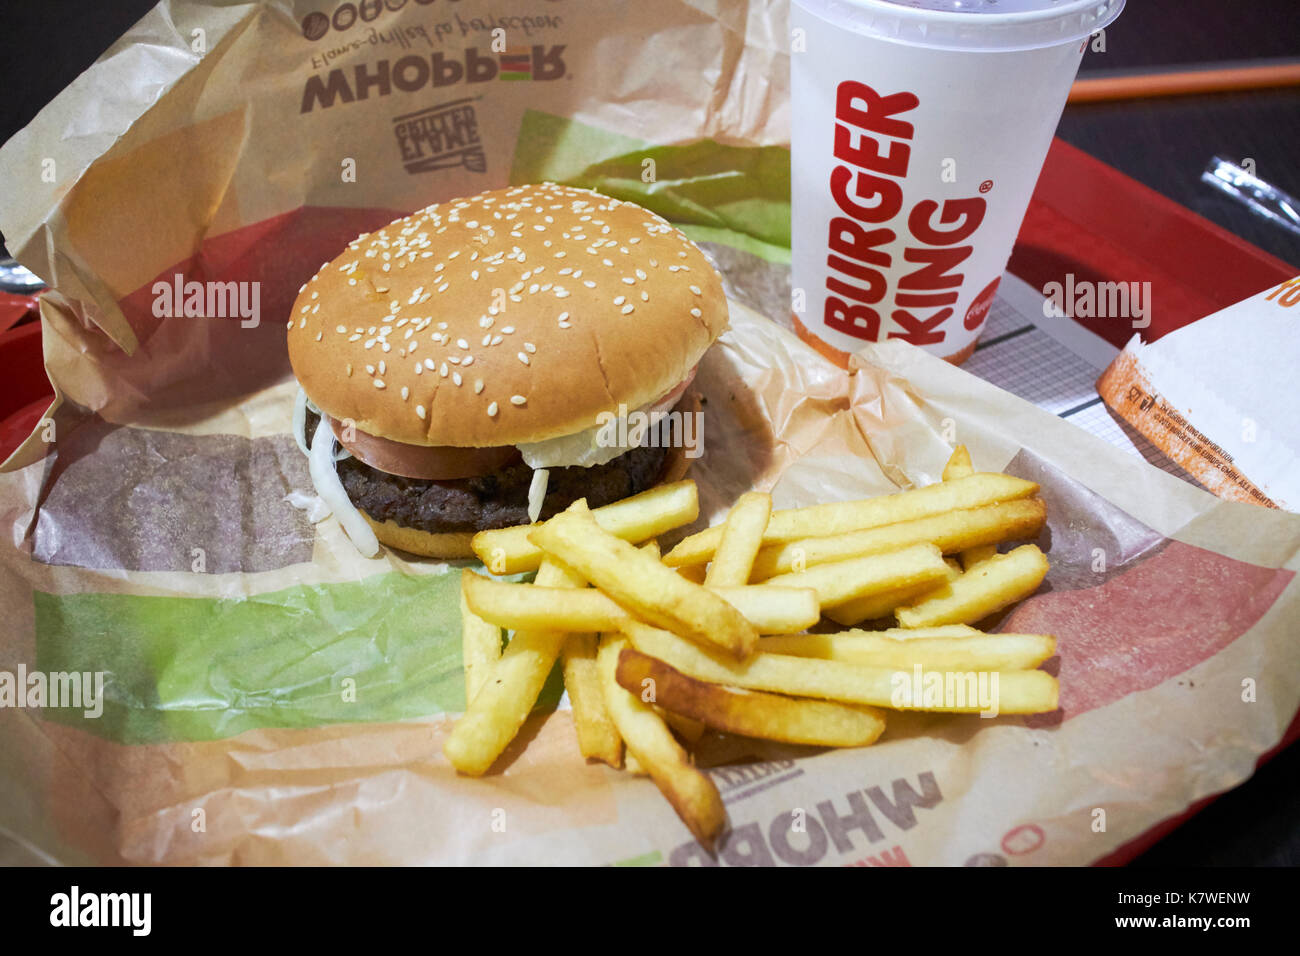 burger king whopper meal Stock Photo: 159756293 - Alamy